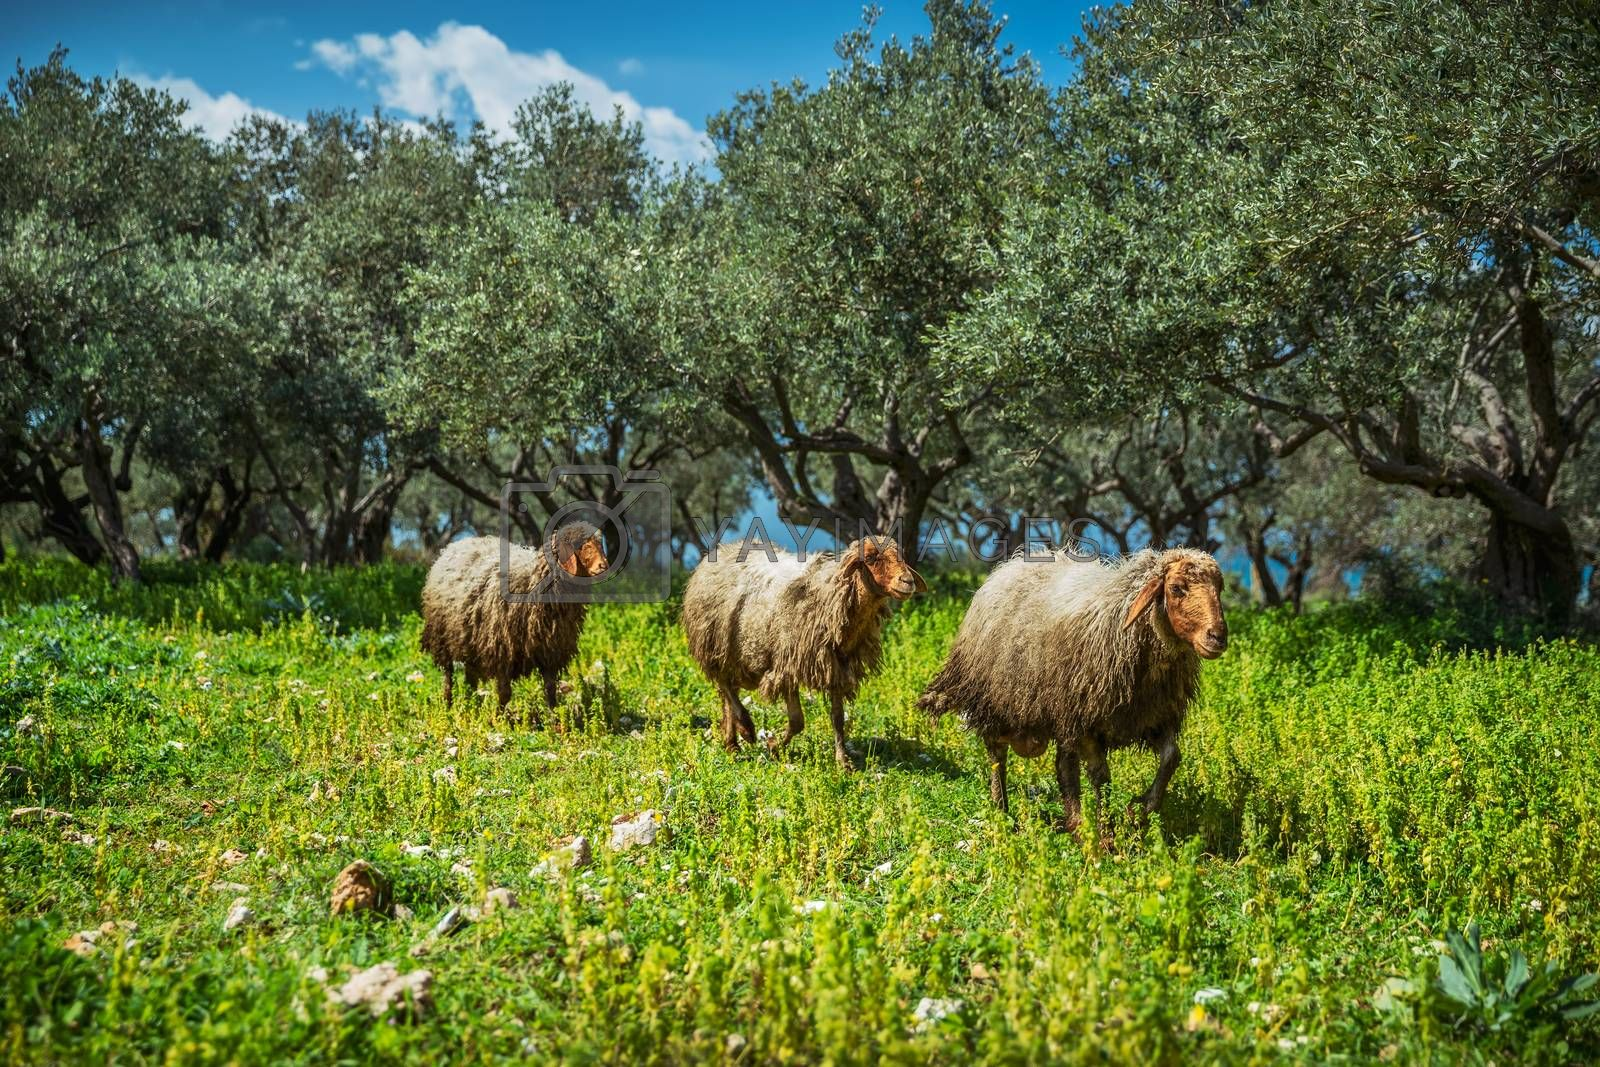 Domestic Sheeps. Farm Animals Grazing in the Wild Nature. Open Space Farming. Organic Agriculture.